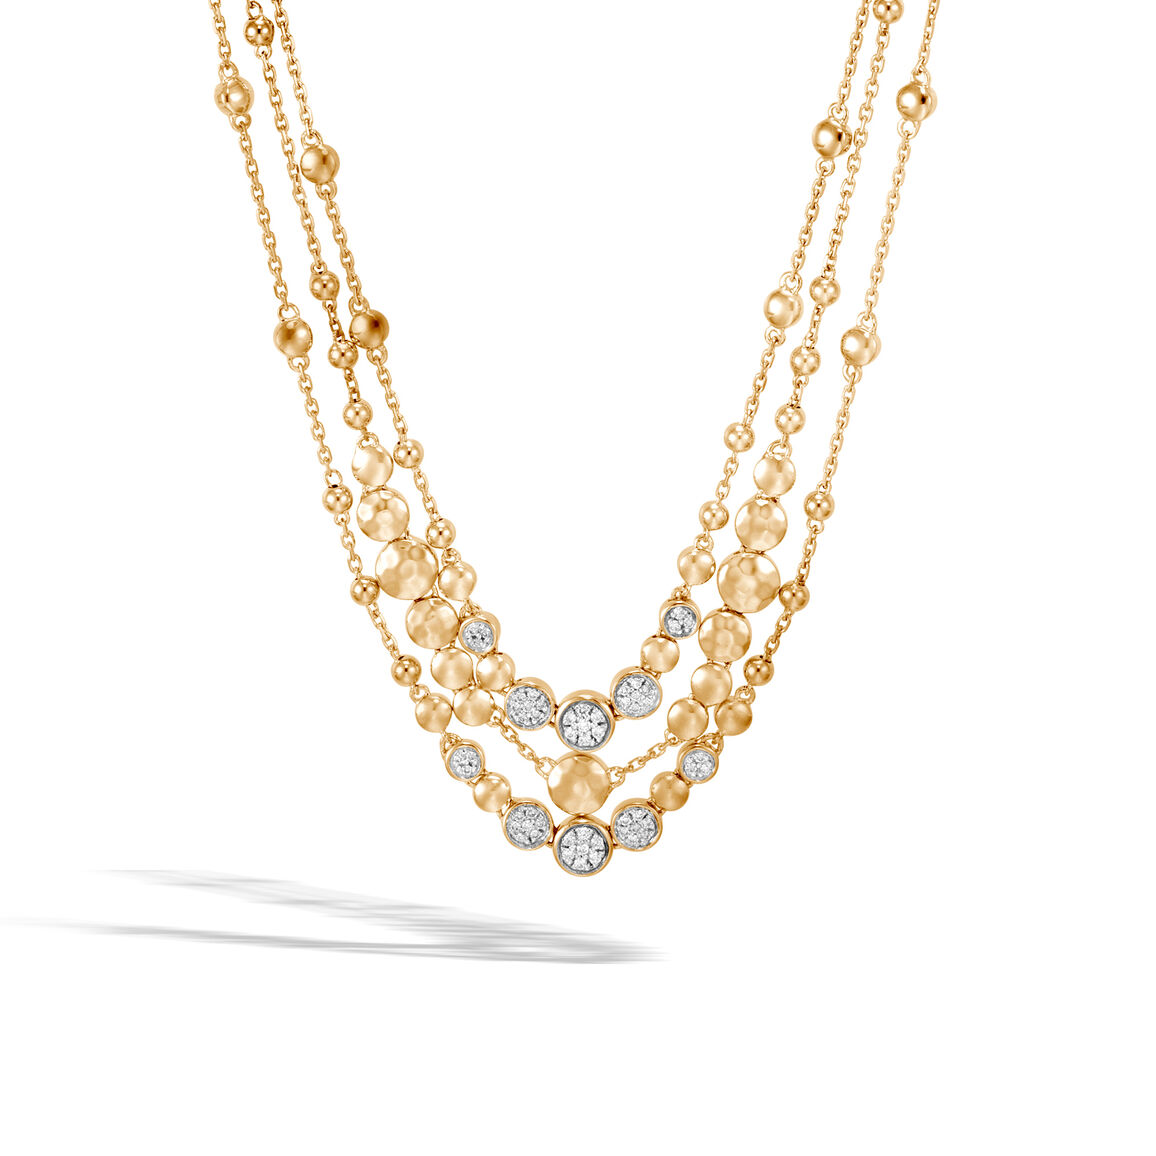 Dot Multi Row Necklace in Hammered 18K Gold with Diamonds